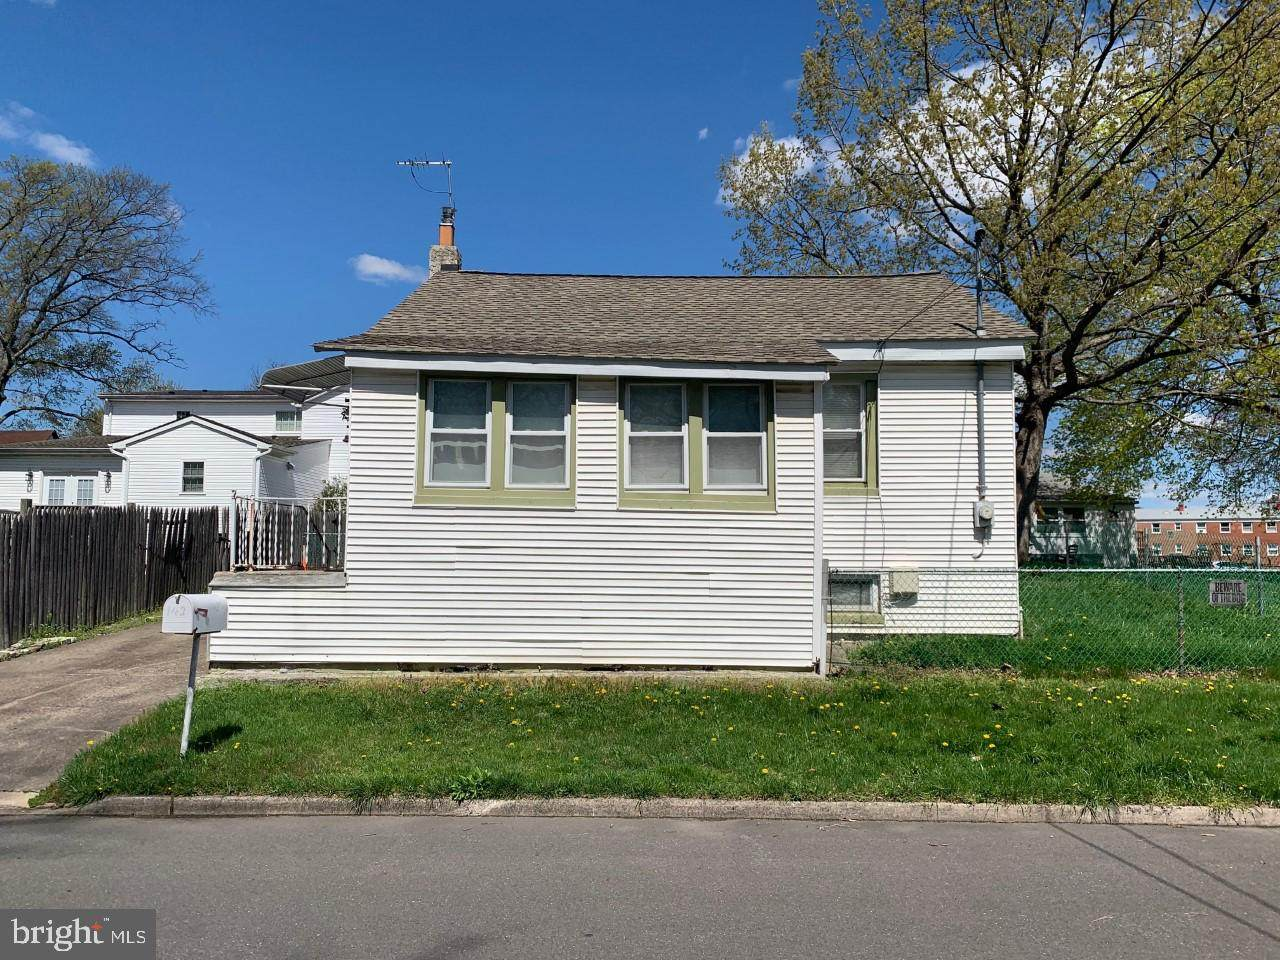 142 Reeves Avenue - Photo 1